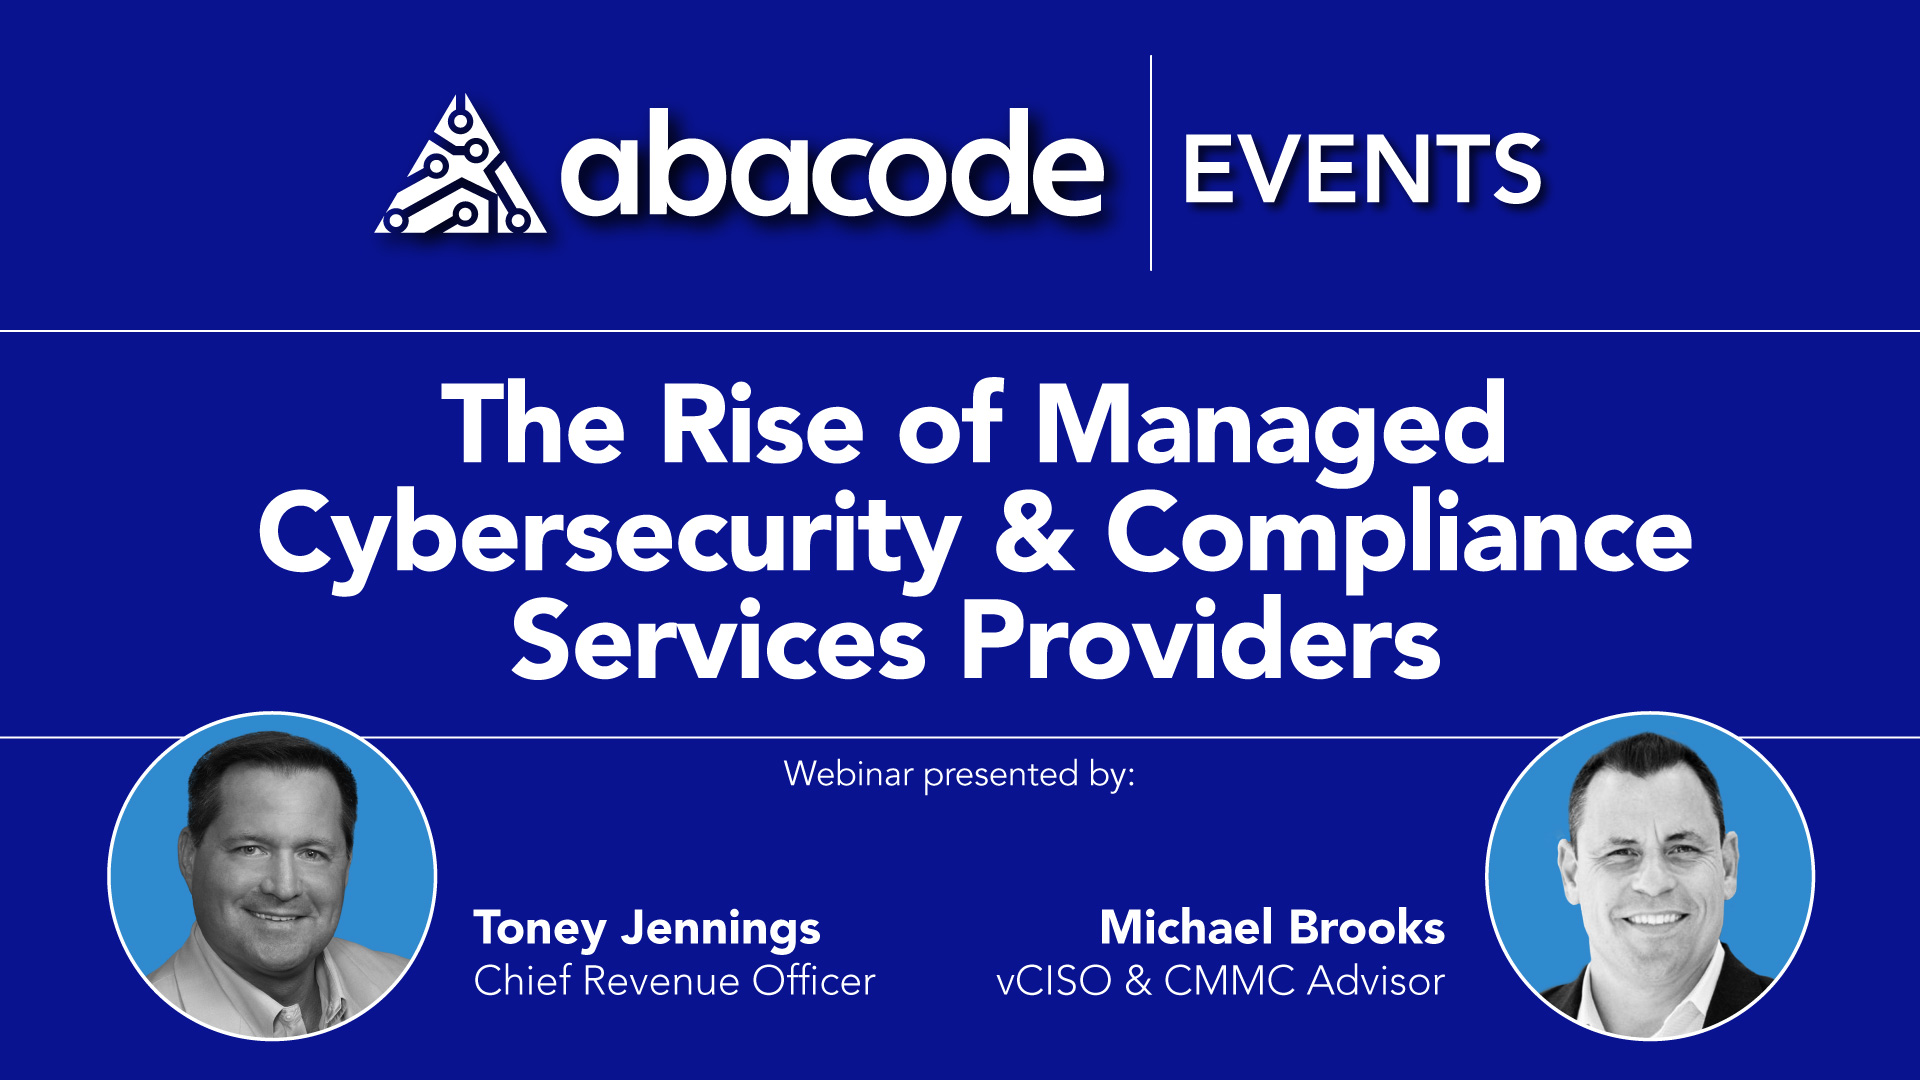 Abacode Events: The Rise of Managed Cybersecurity & Compliance Services Providers